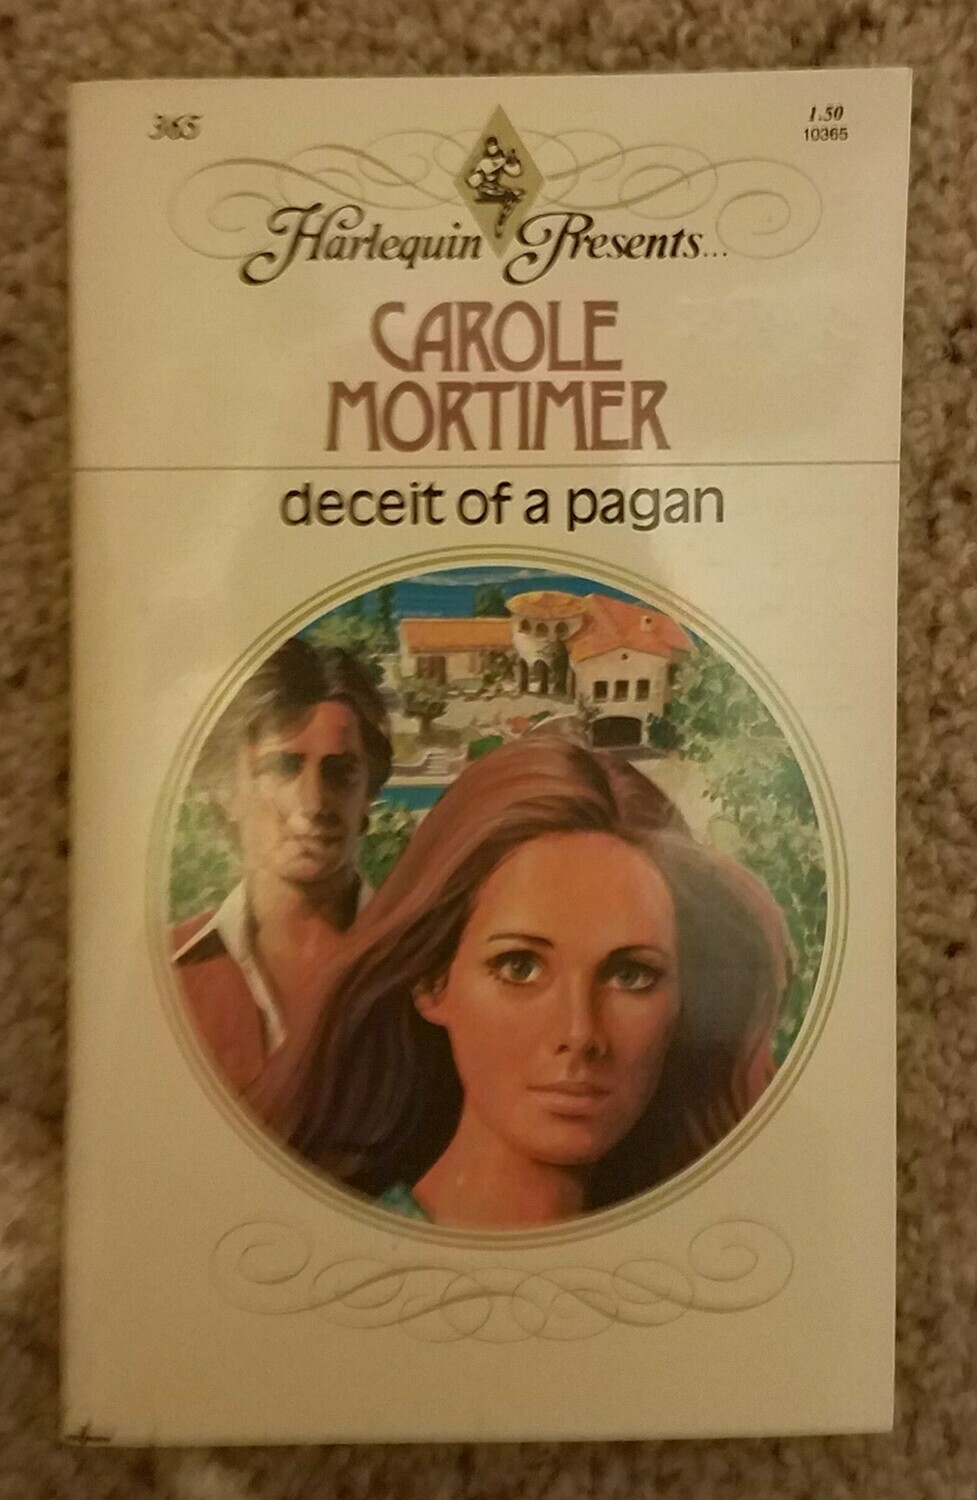 Deceit of a Pagan by Carole Mortimer